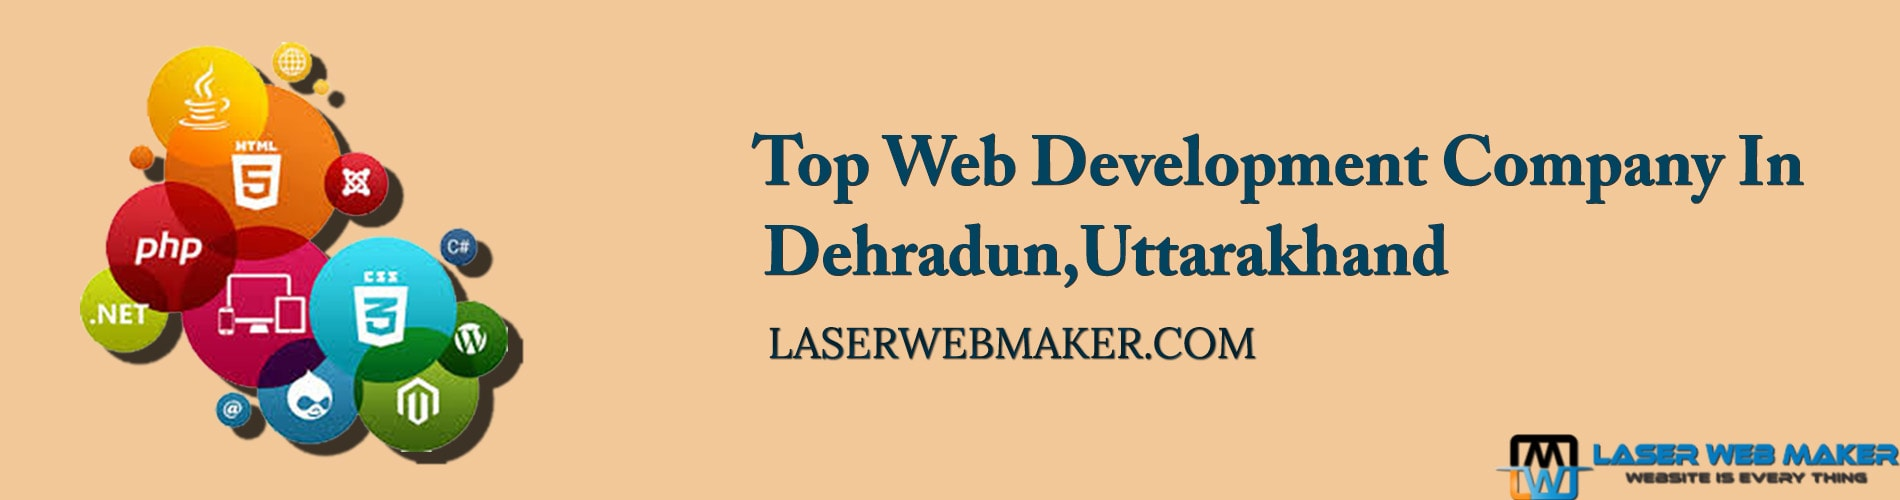 Top Web Development Company In Dehradun, Uttarakhand